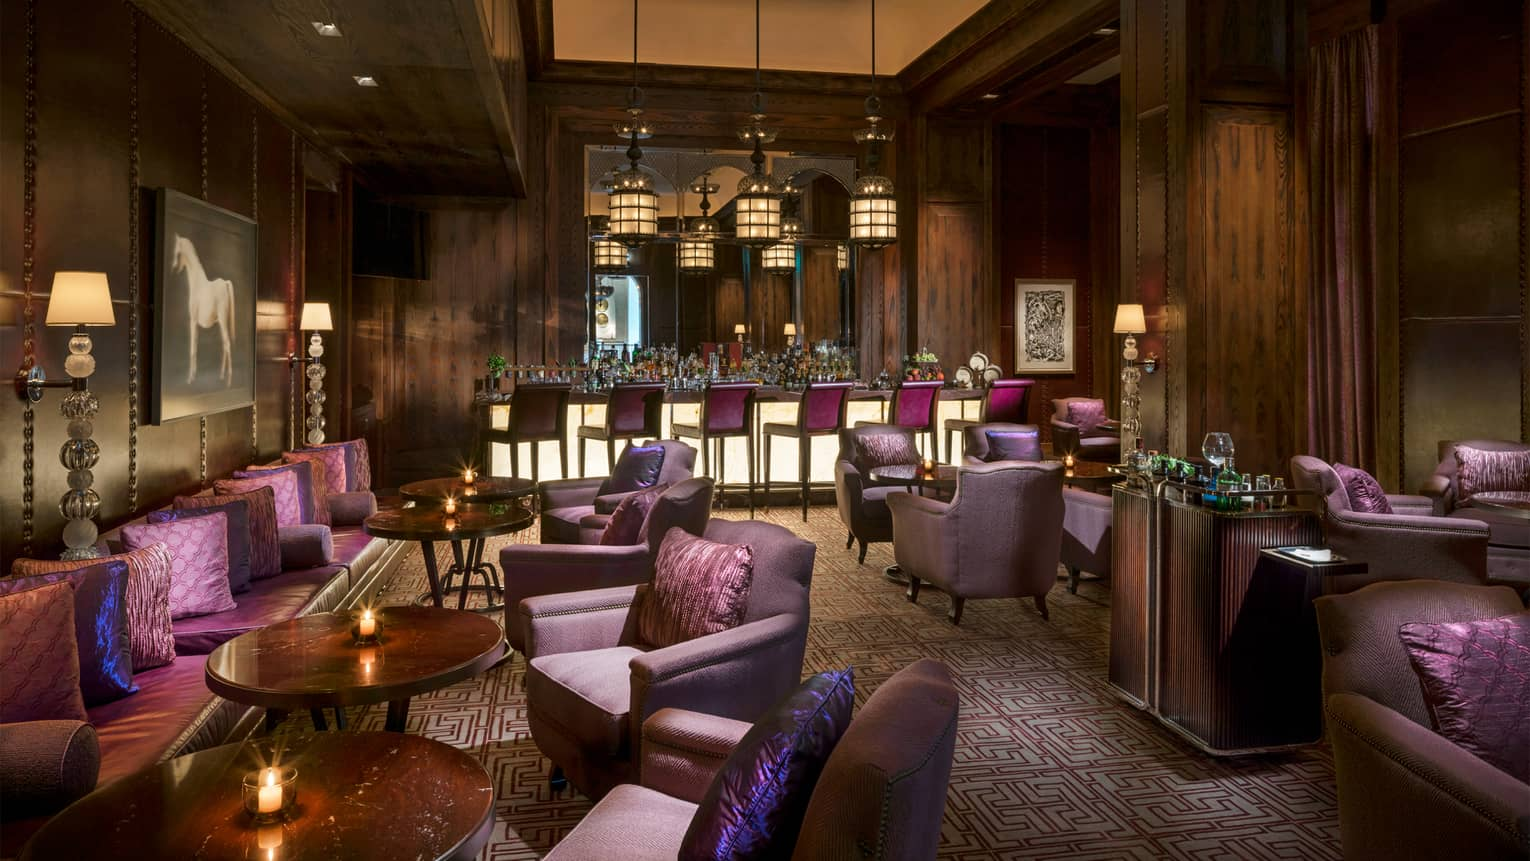 Hendricks Bar dimly-lit cigar club lounge with rich wood and purple decor